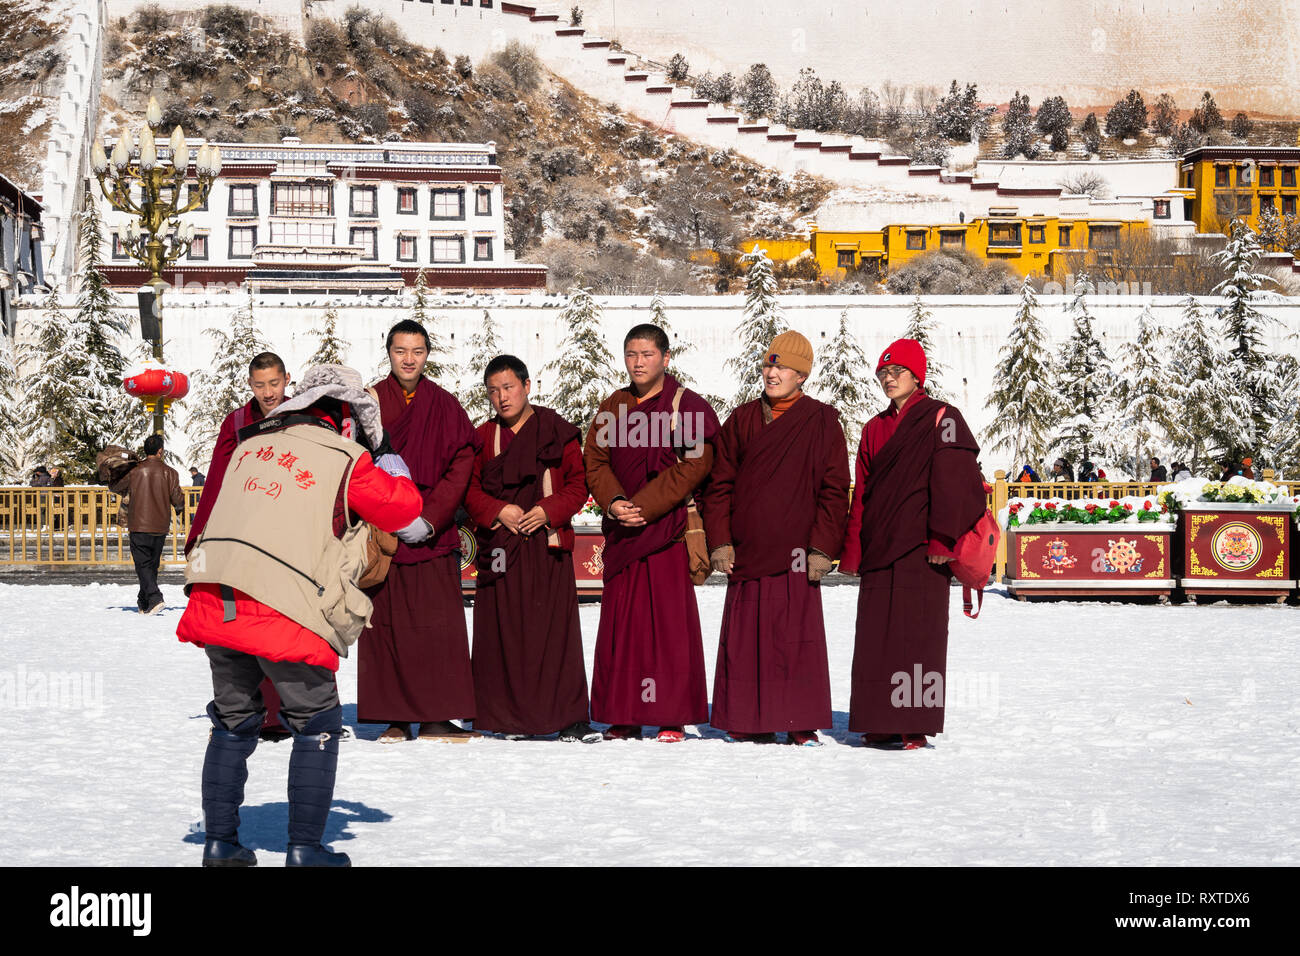 Lhasa, China - December 19 2018: Tibetan Buddhism monks posing for photo in front of the Potala Palace  on a sunny winter day in Tibet. - Stock Image